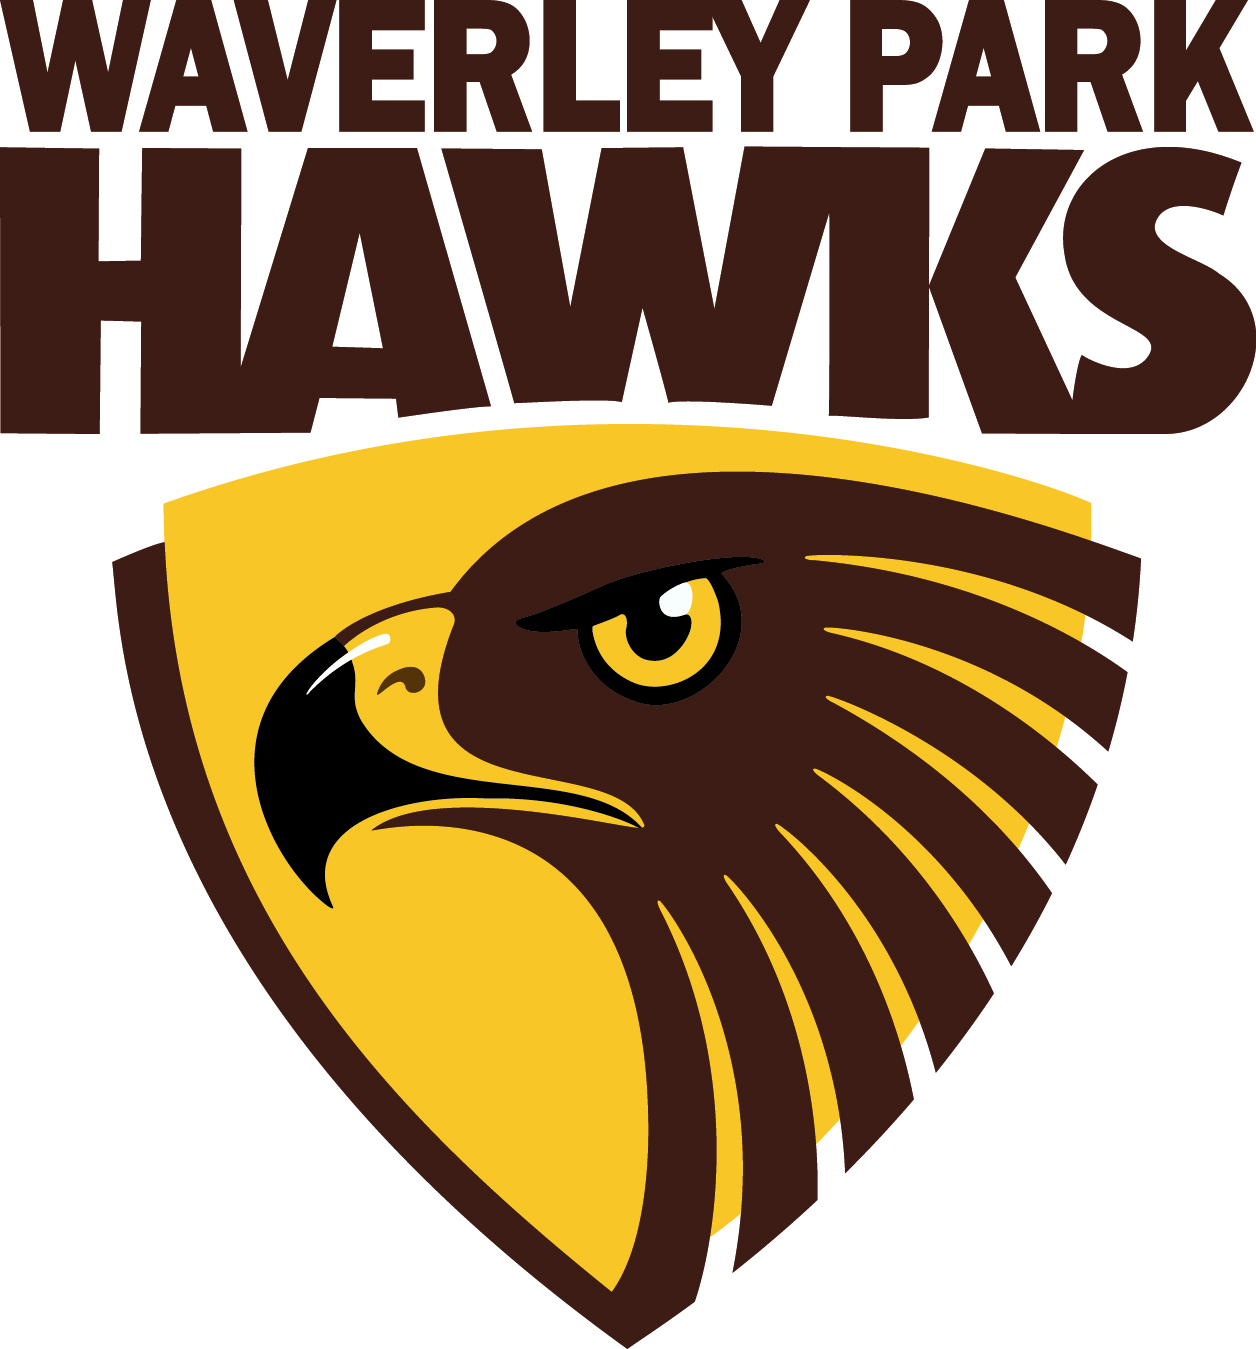 Waverley Park Hawks Junior Football Club